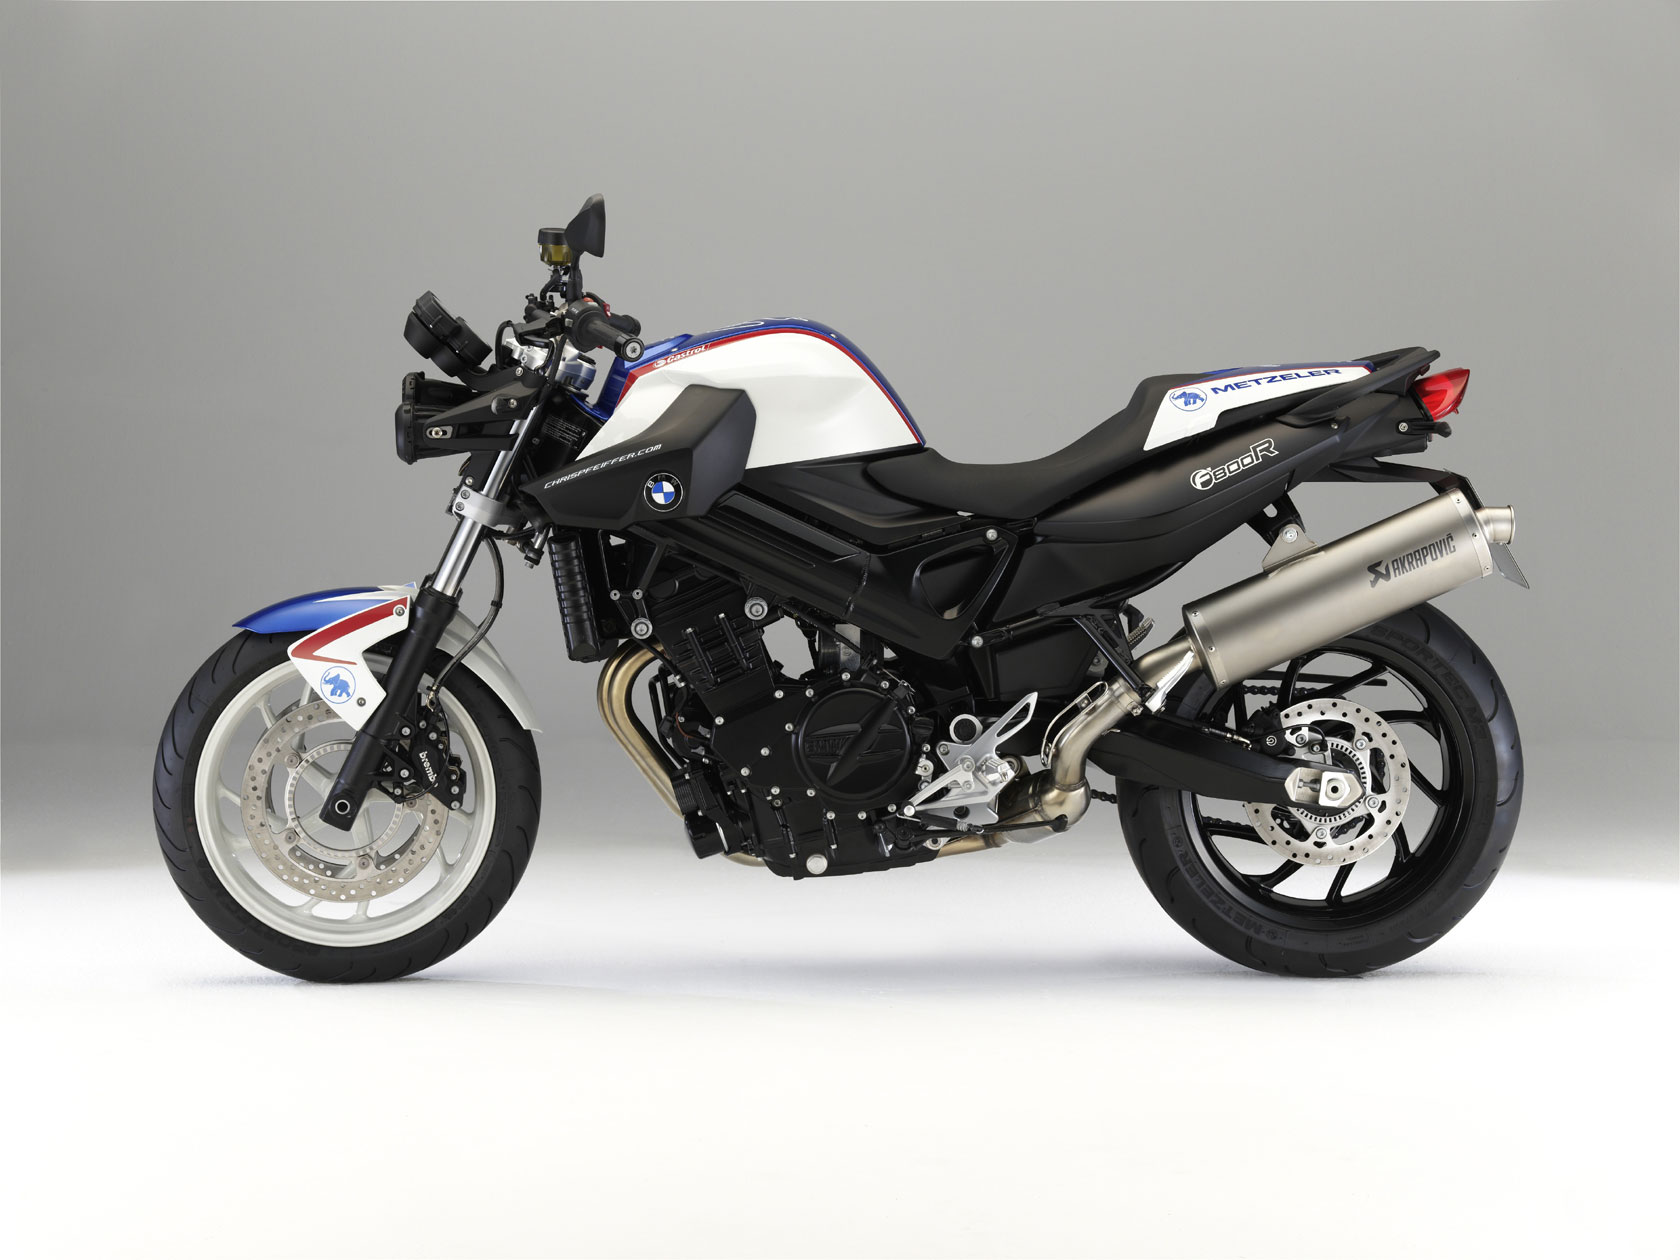 bmw f 800 r chris pfeiffer edition specs 2009 2010. Black Bedroom Furniture Sets. Home Design Ideas